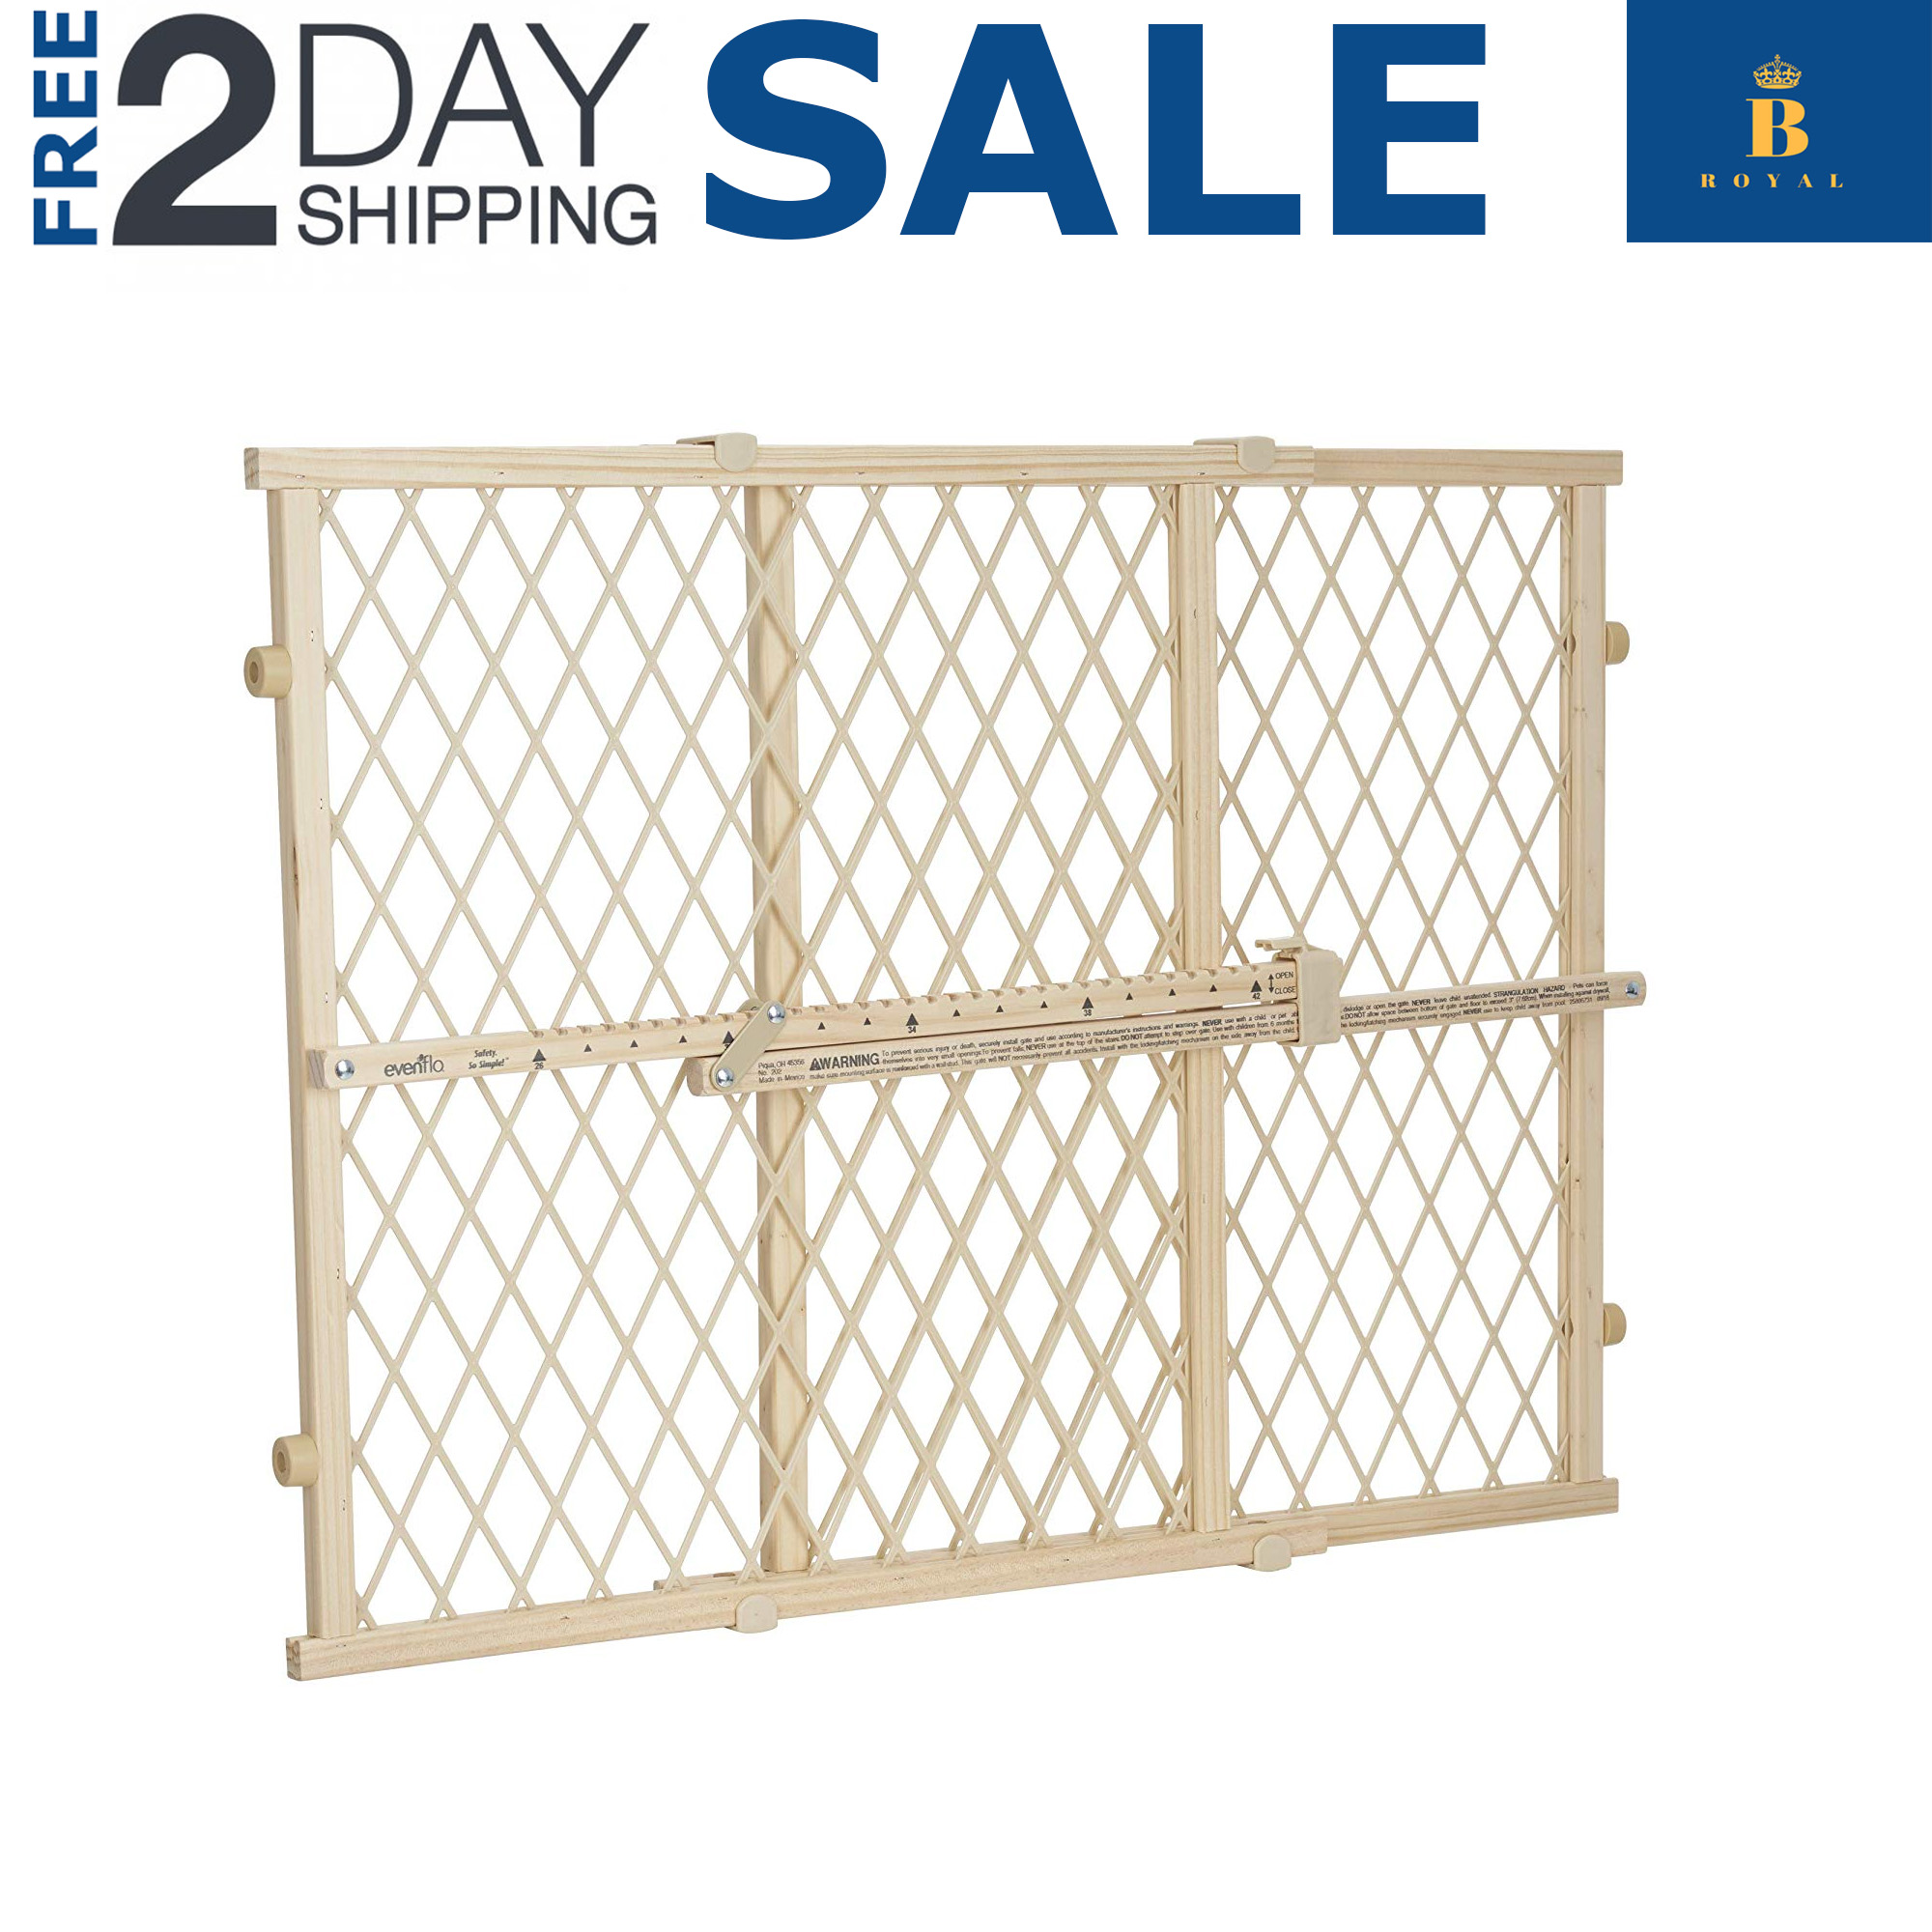 "Dog Gate Expandable Barrier Wood Fence Evenflo Position And Lock Tall 23/""x 42/'/'"